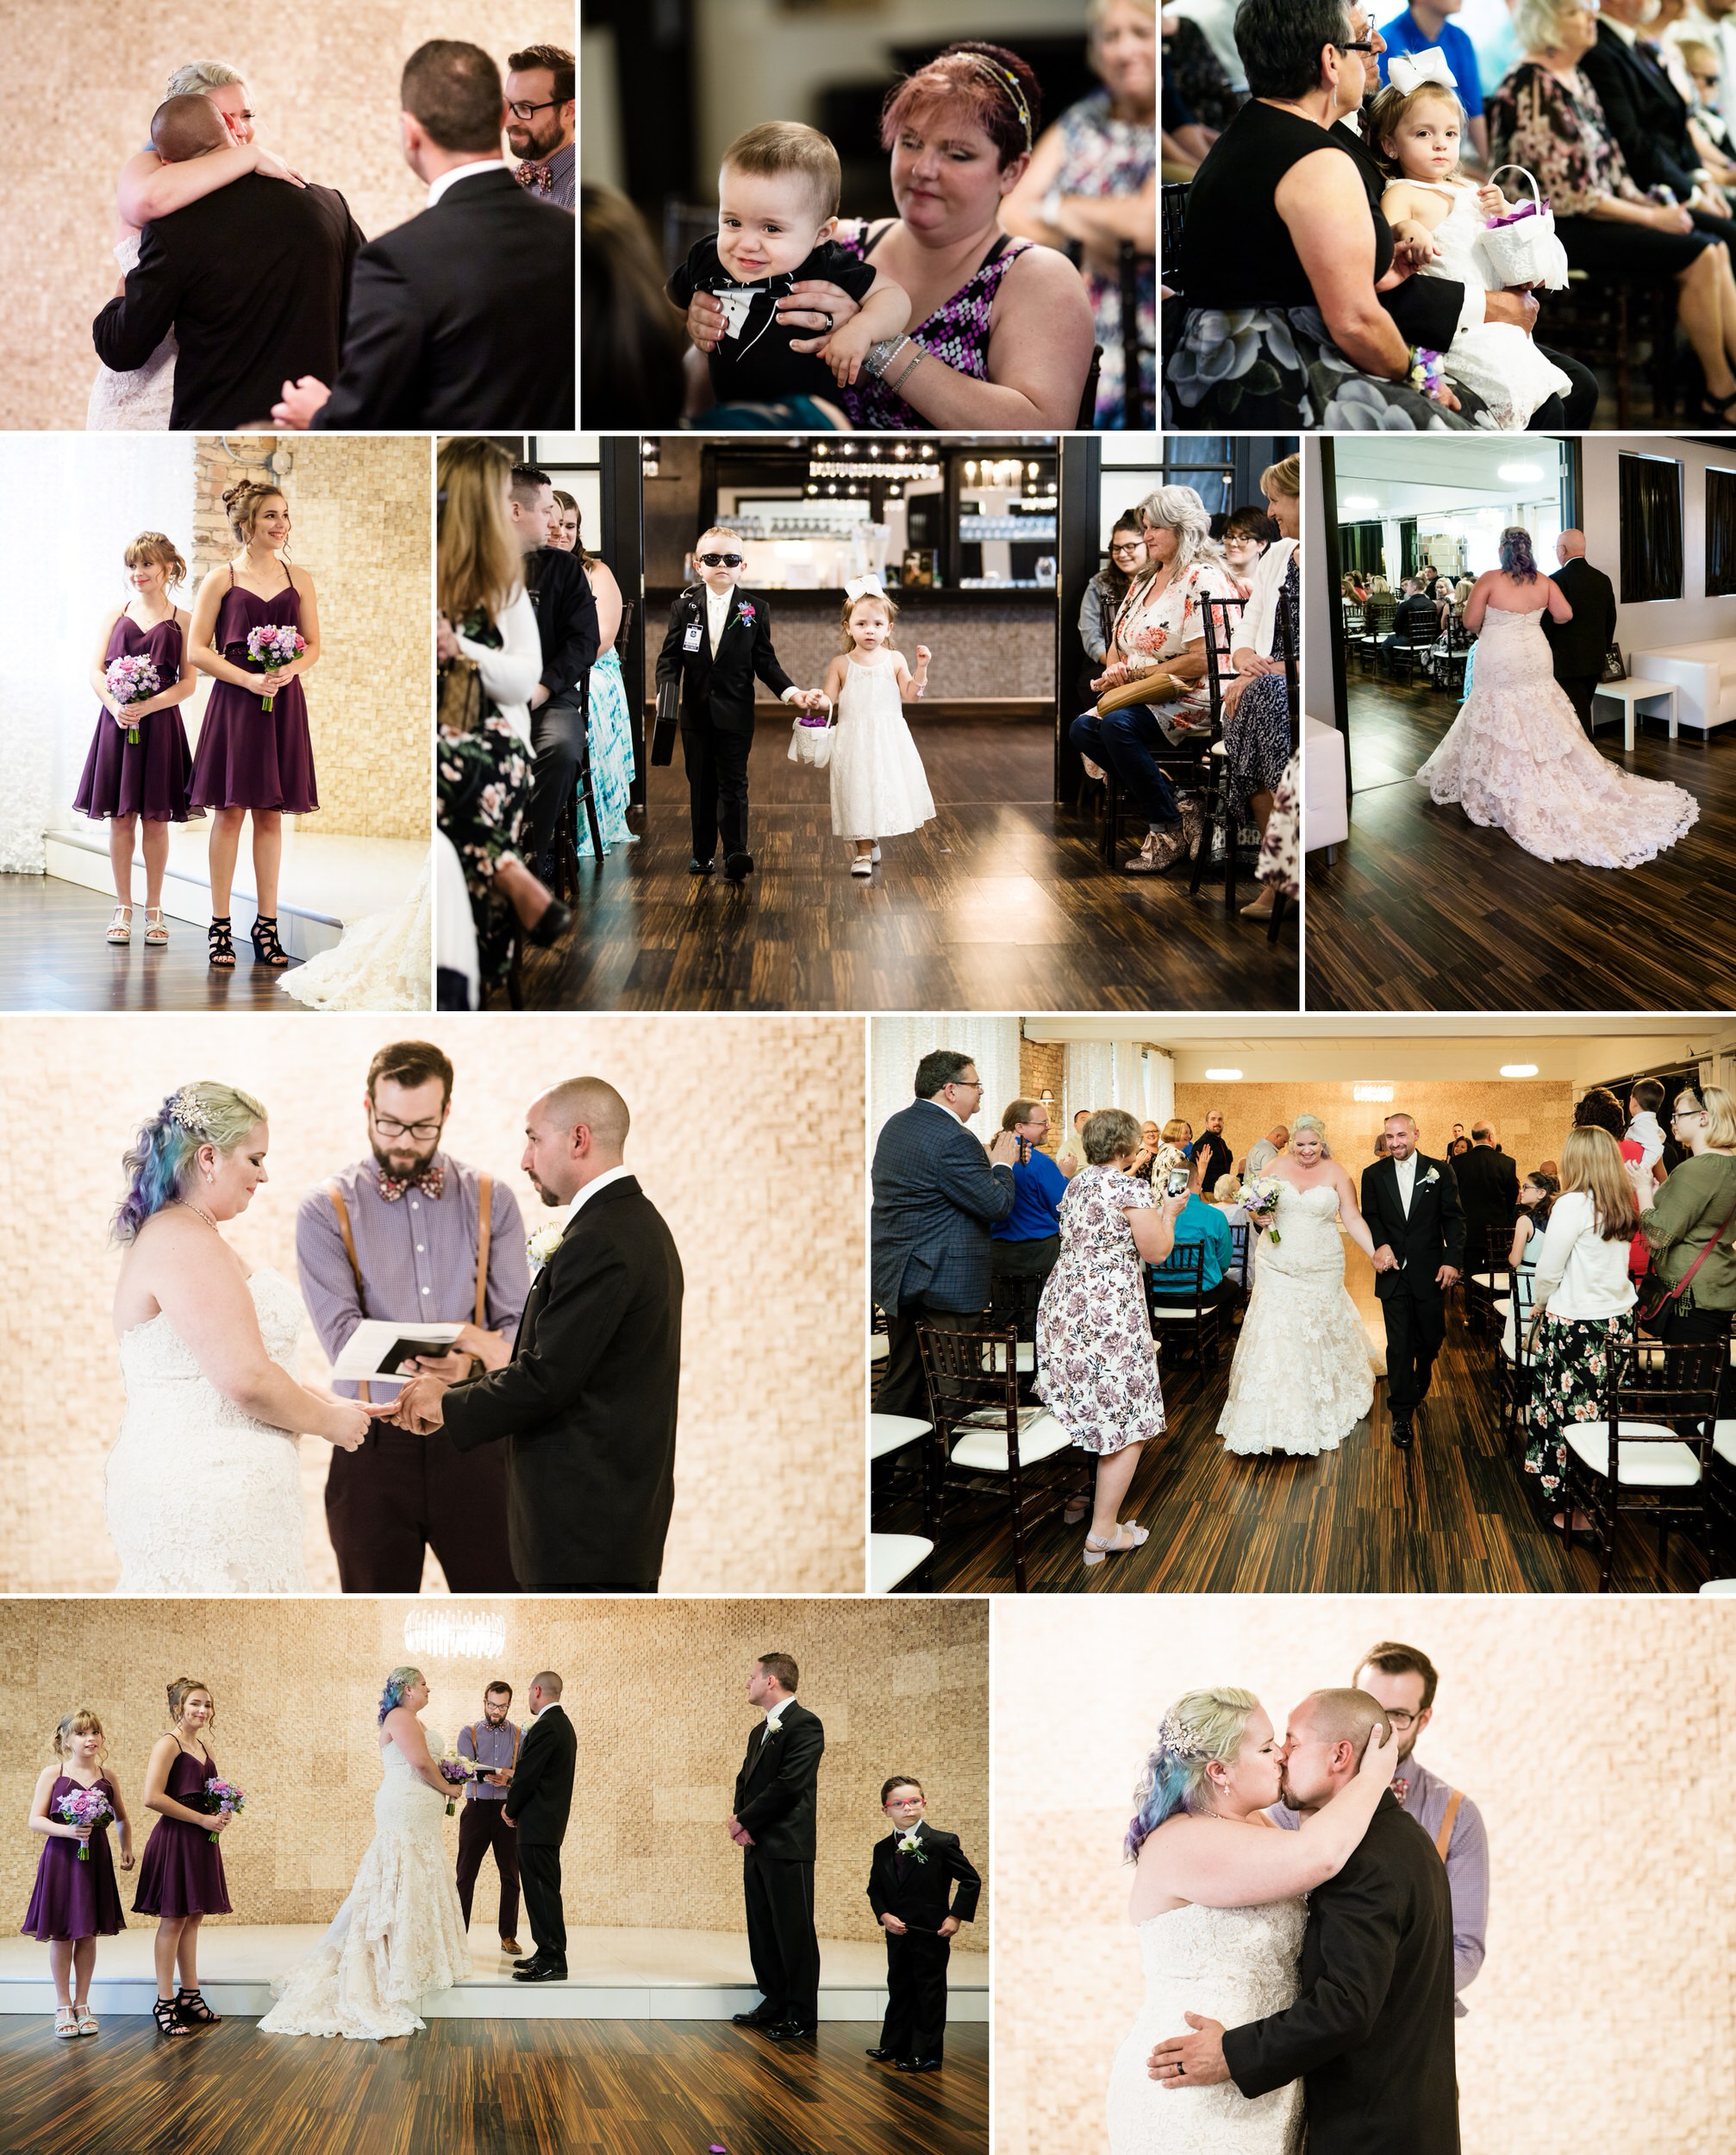 A heartfelt wedding ceremony at The Allure in Laporte, Indiana.